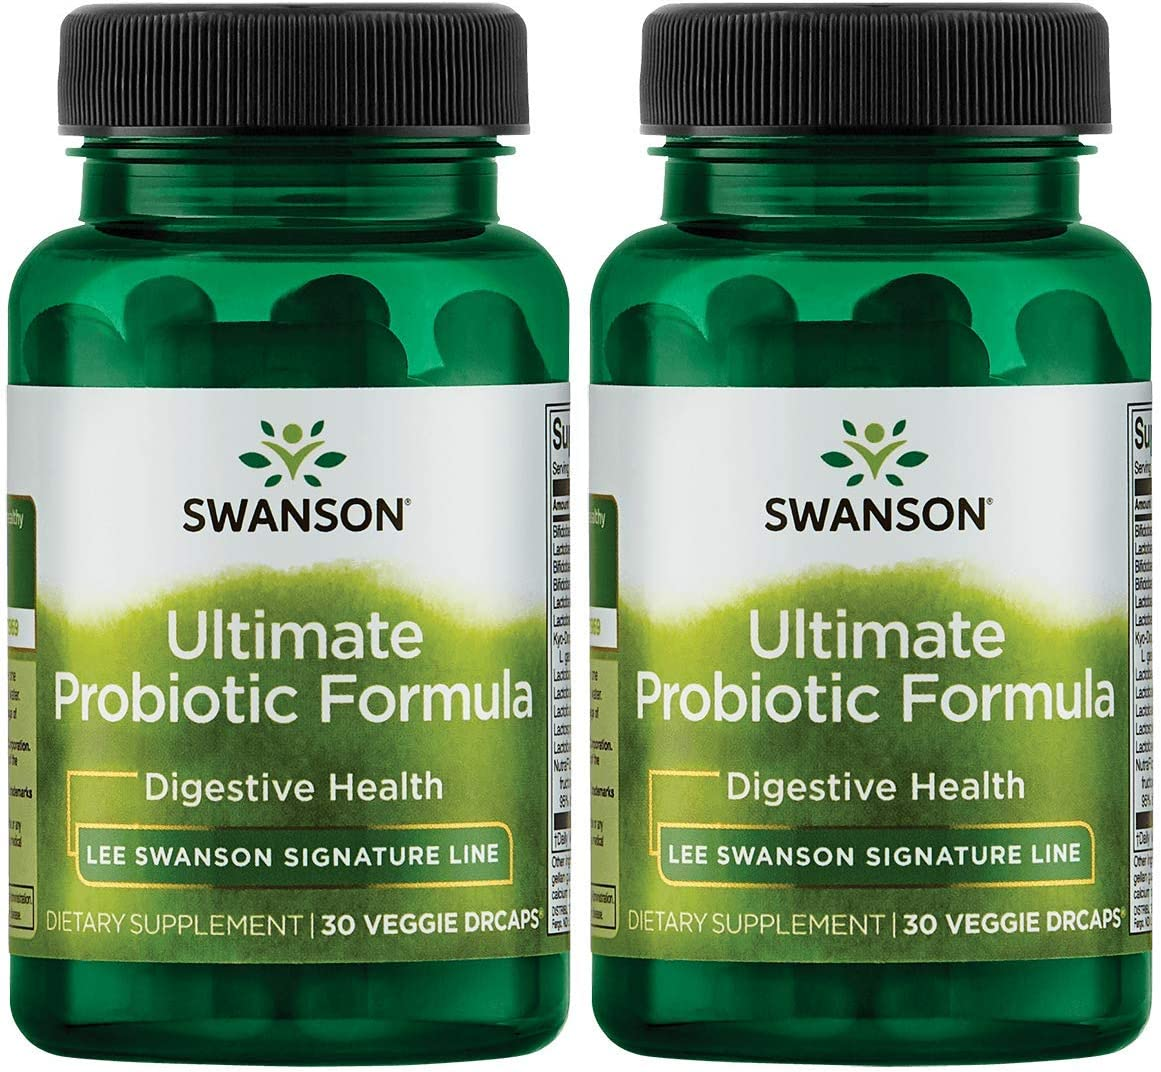 Swanson Ultimate Probiotic Formula Digestive Health Immune System Support 66 Billion CFU Prebiotic NutraFlora scFOS 30 DRcaps Veggie Capsules (Caps) (2 Pack)